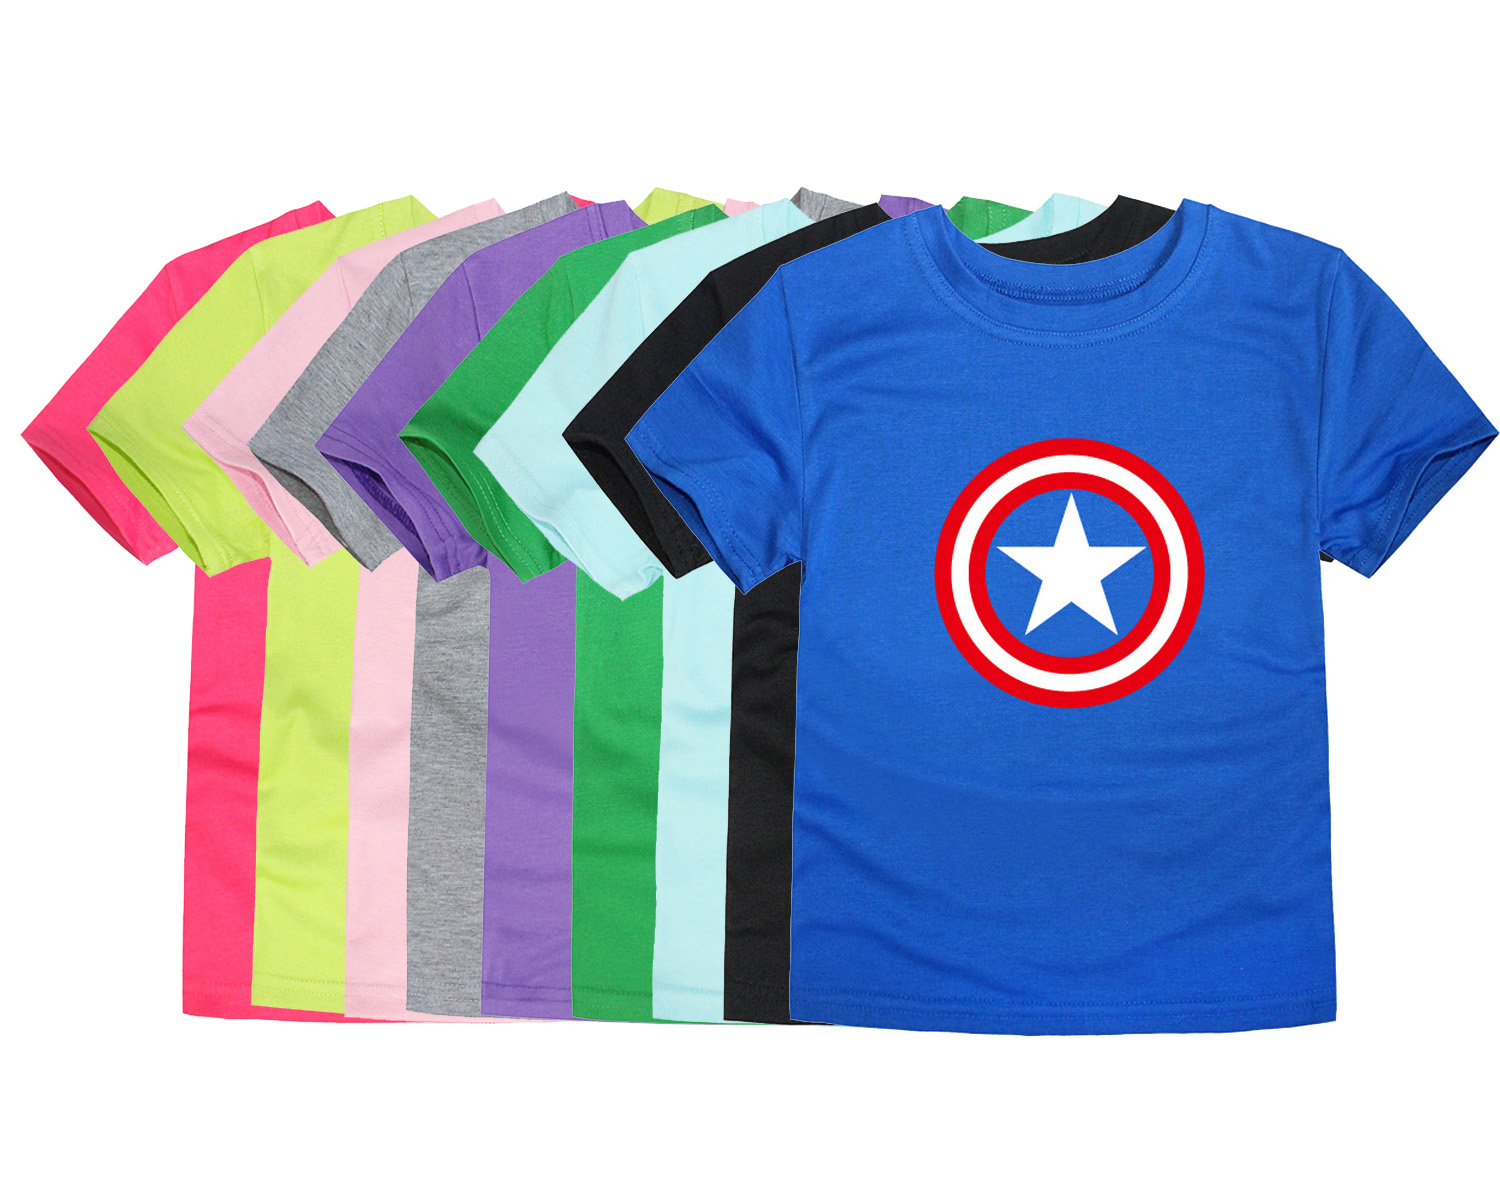 Children Brand Tops Boys Captain America T Shirt Baby Girls Superhero Tees Kids T-Shirt  For 2-14 Years